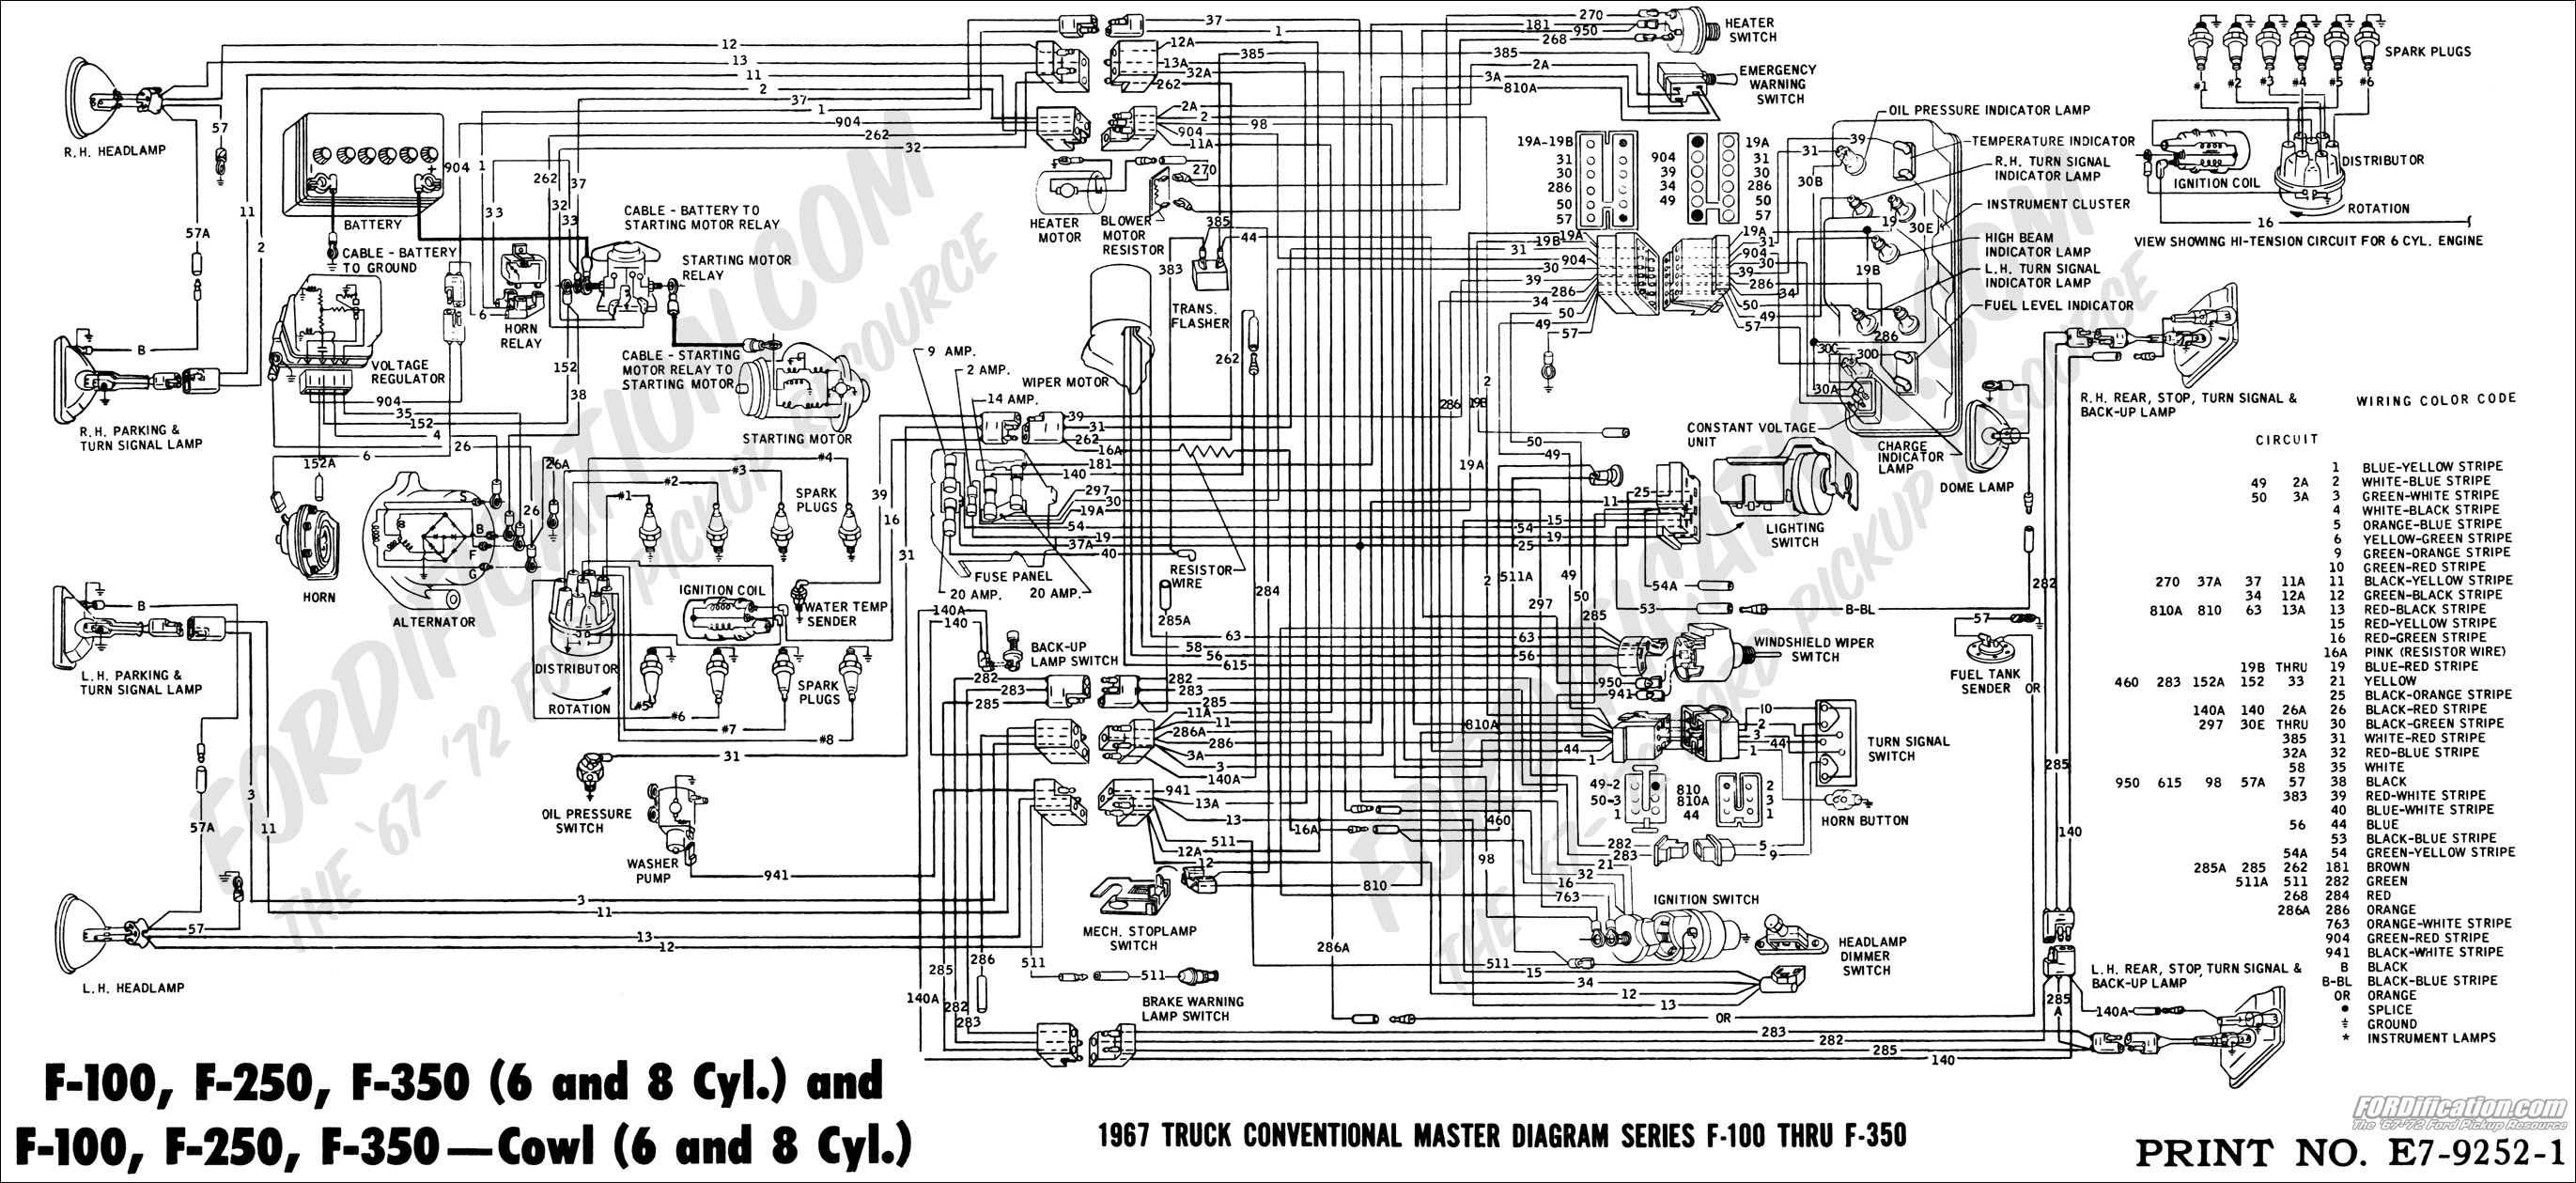 1970 ford f100 wiring diagram master product wiring diagrams u2022 rh genesisventures us